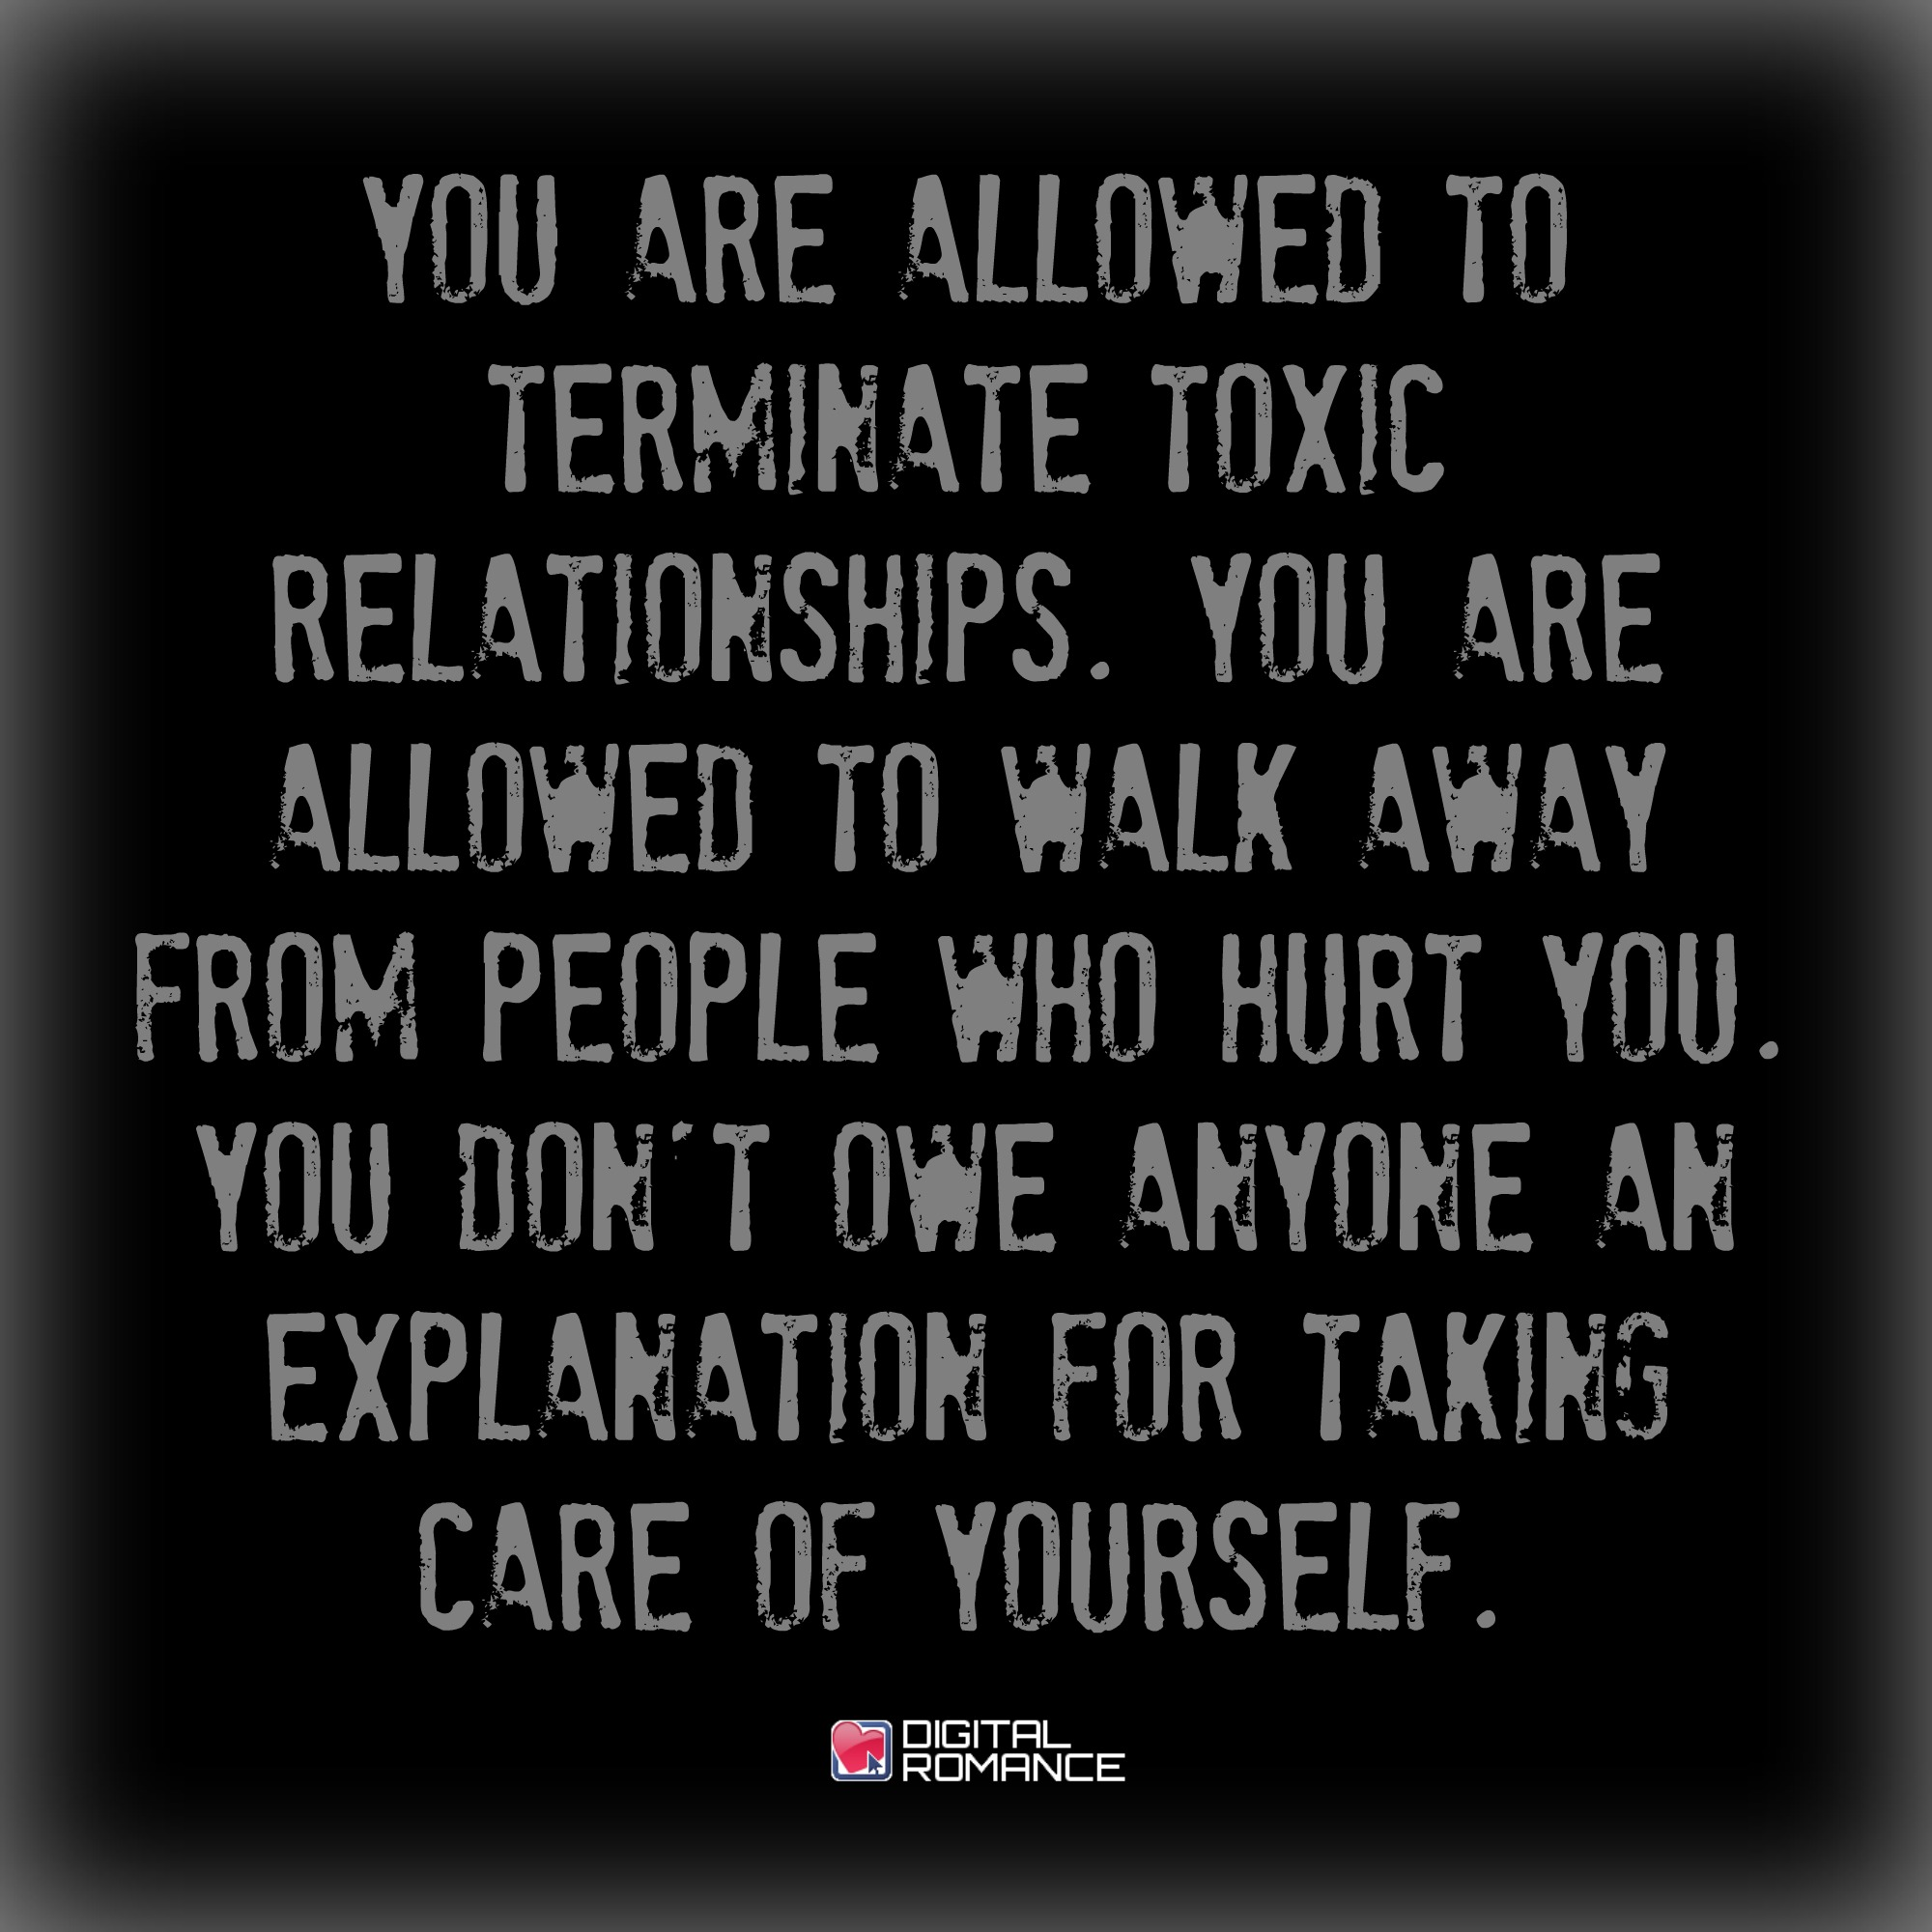 Toxic quotes sayings